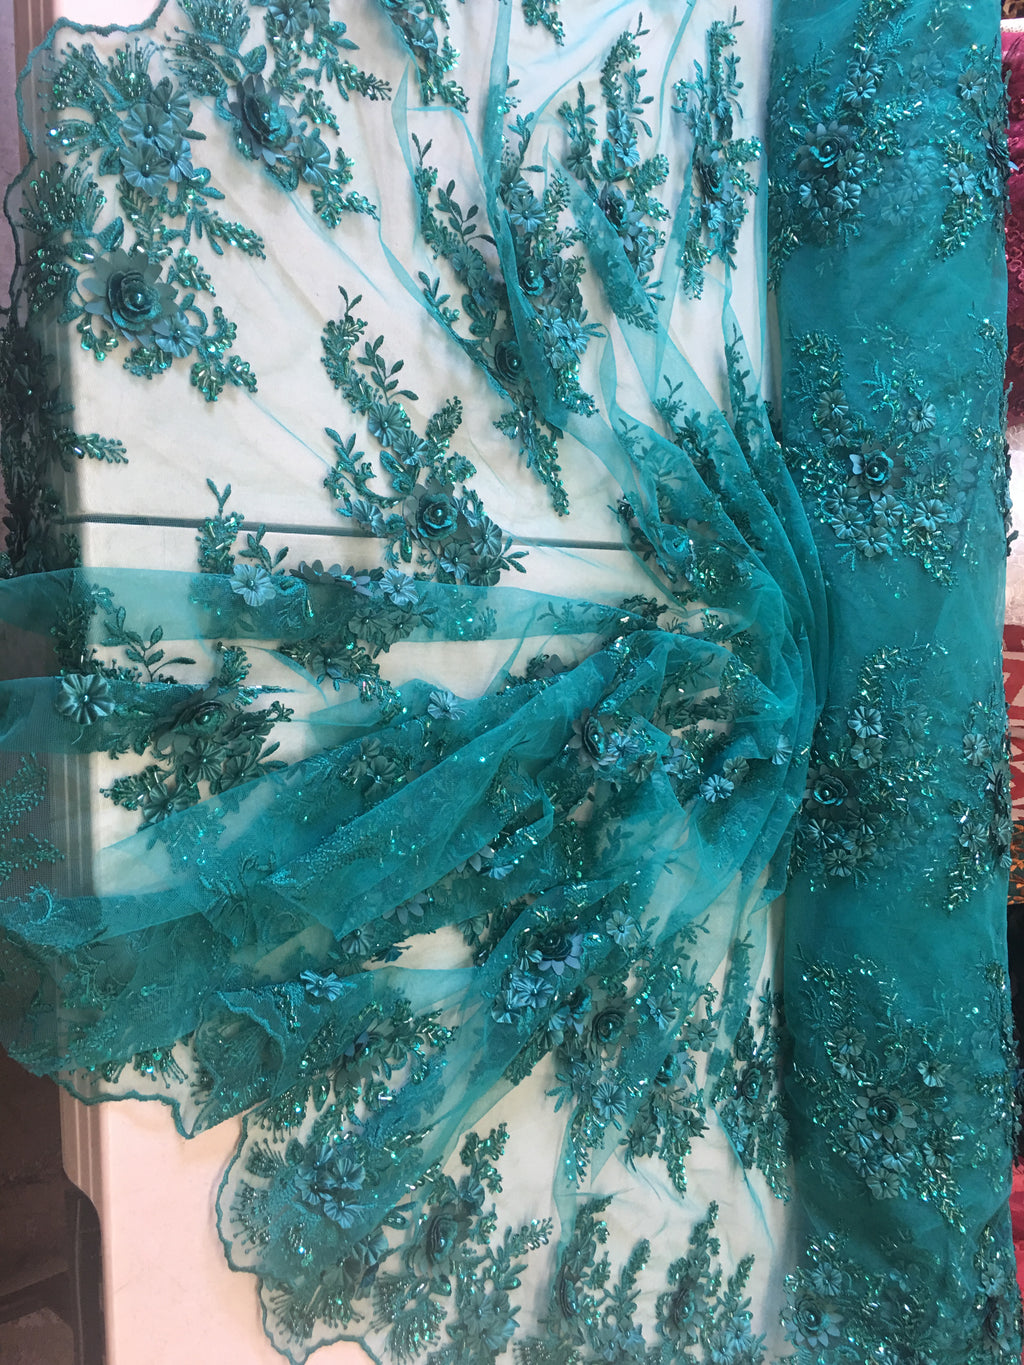 Teal Floral Fabric 3D Flower Bridal Beaded Fabric Heavy Embroidered Mesh Dress For Wedding Veil By The Yard